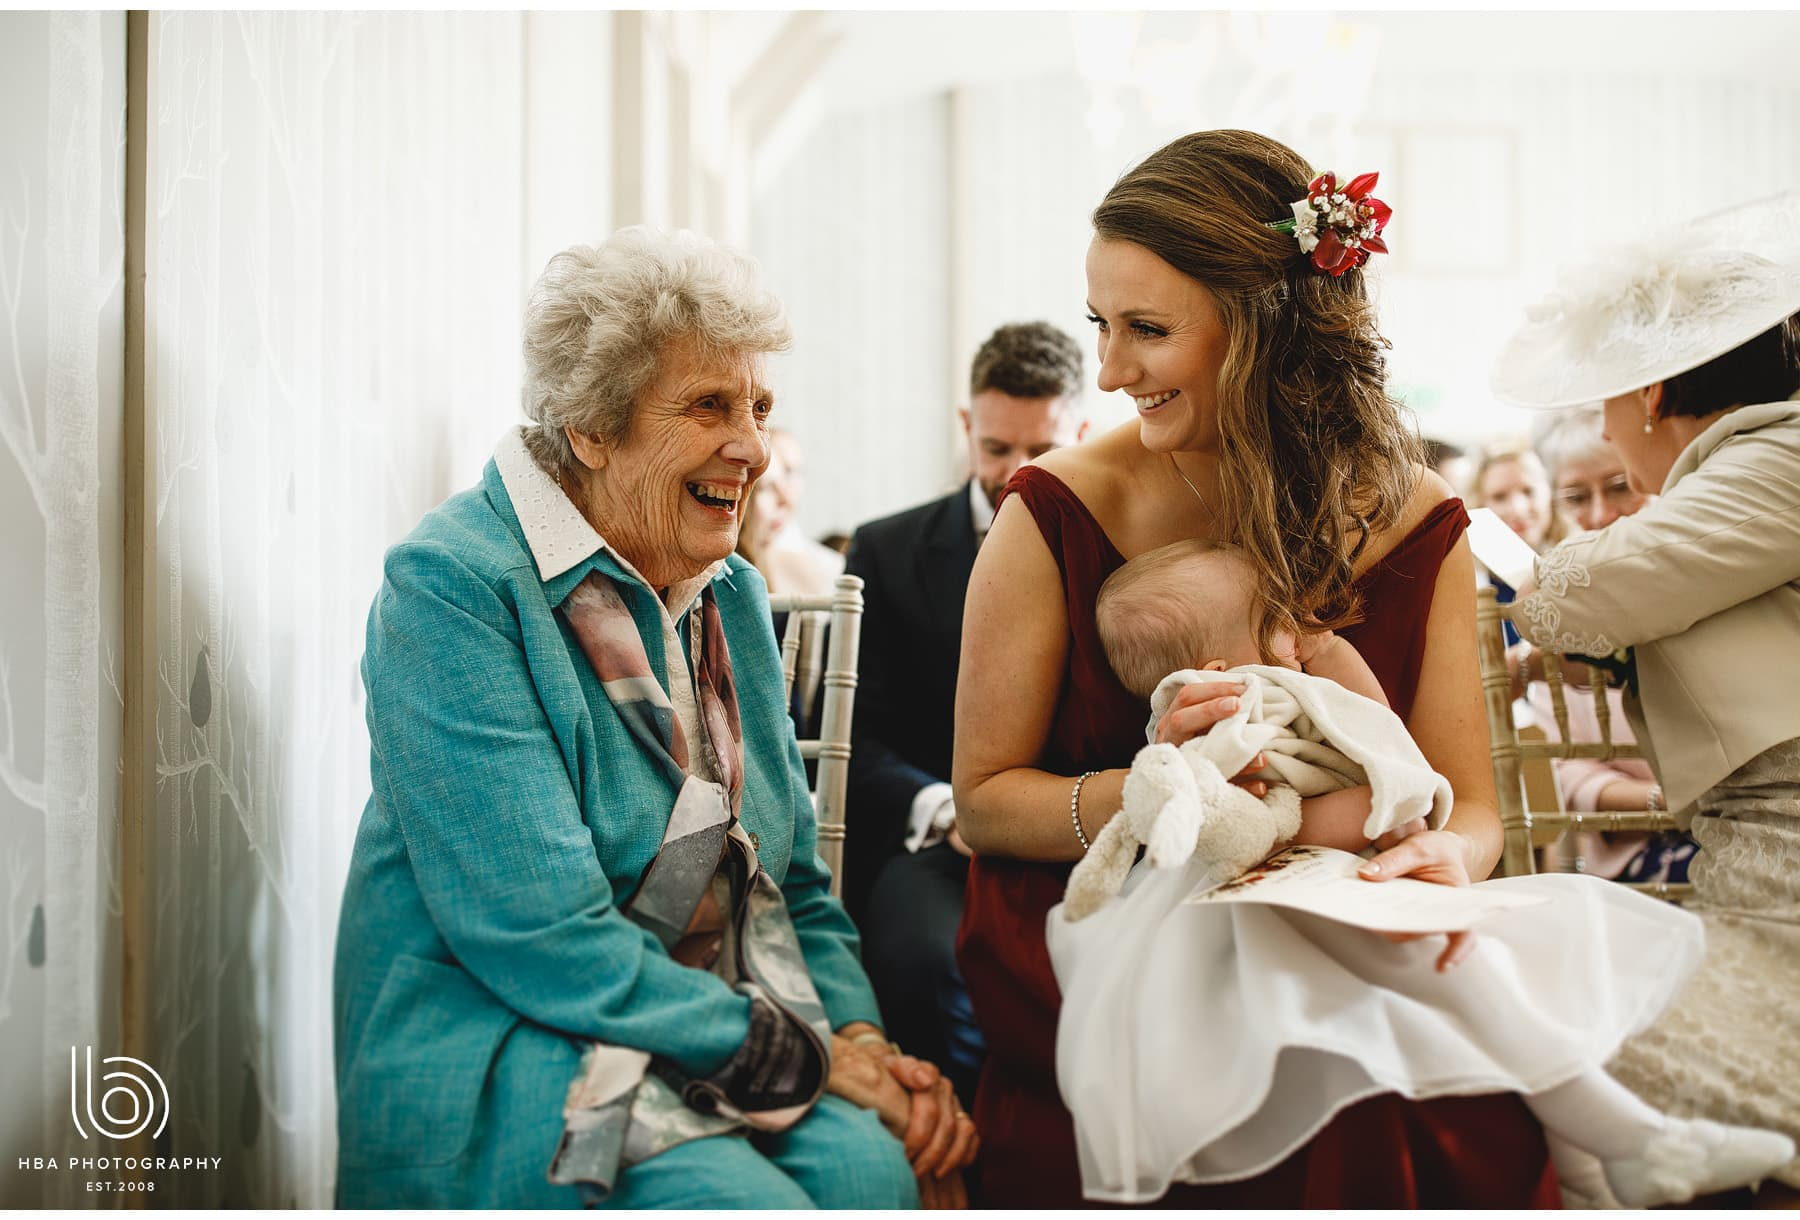 gran smiling during ceremony